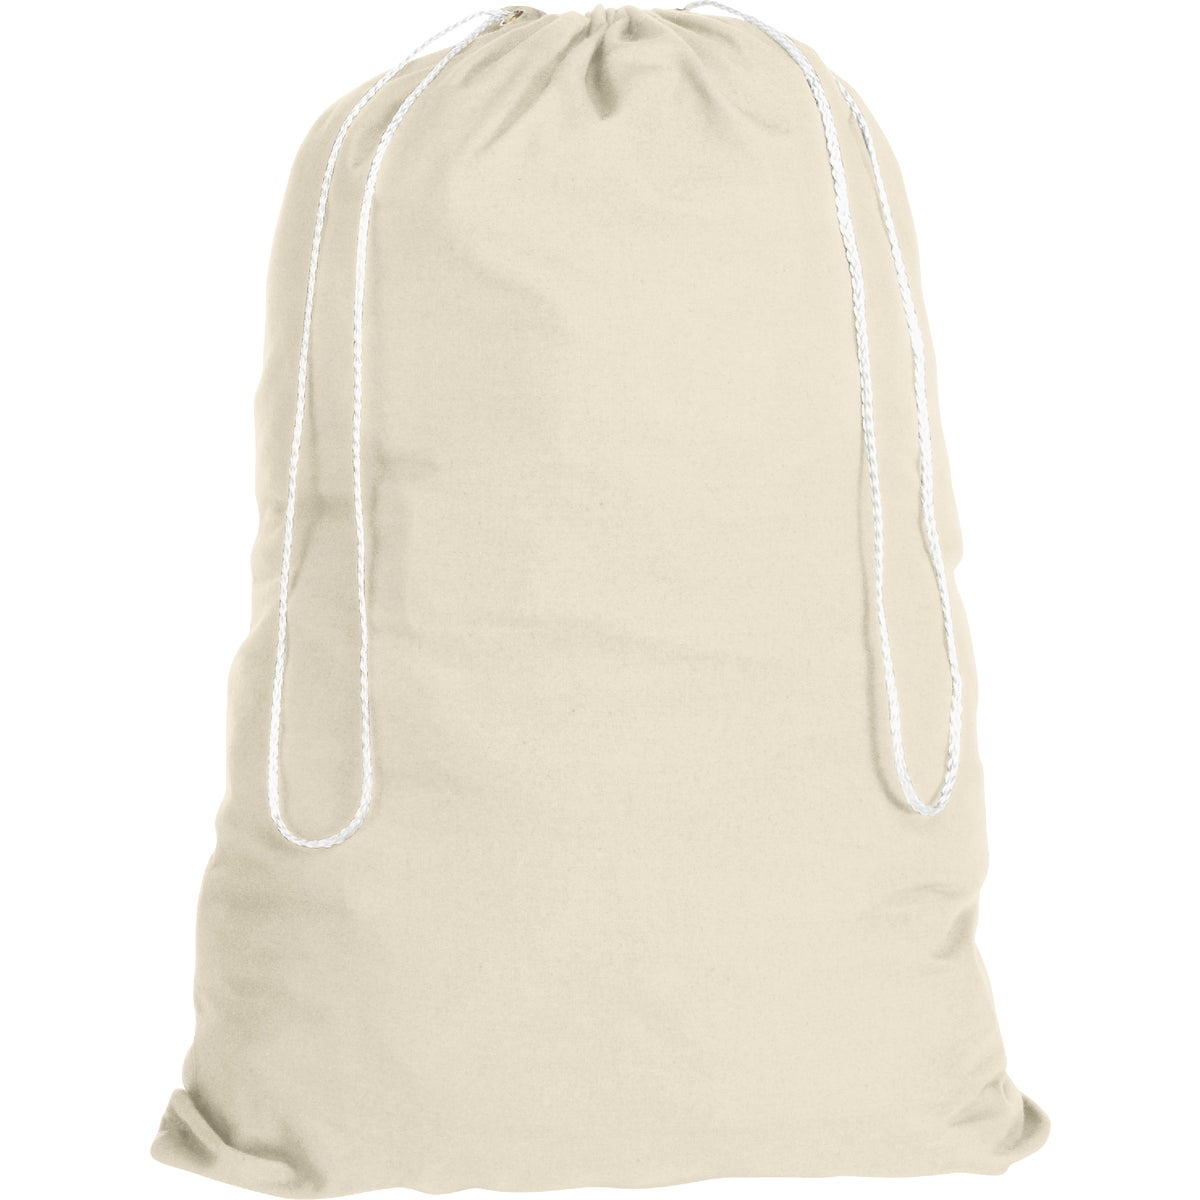 LAUNDRY BAG - 1220072 by Homz  Seymour